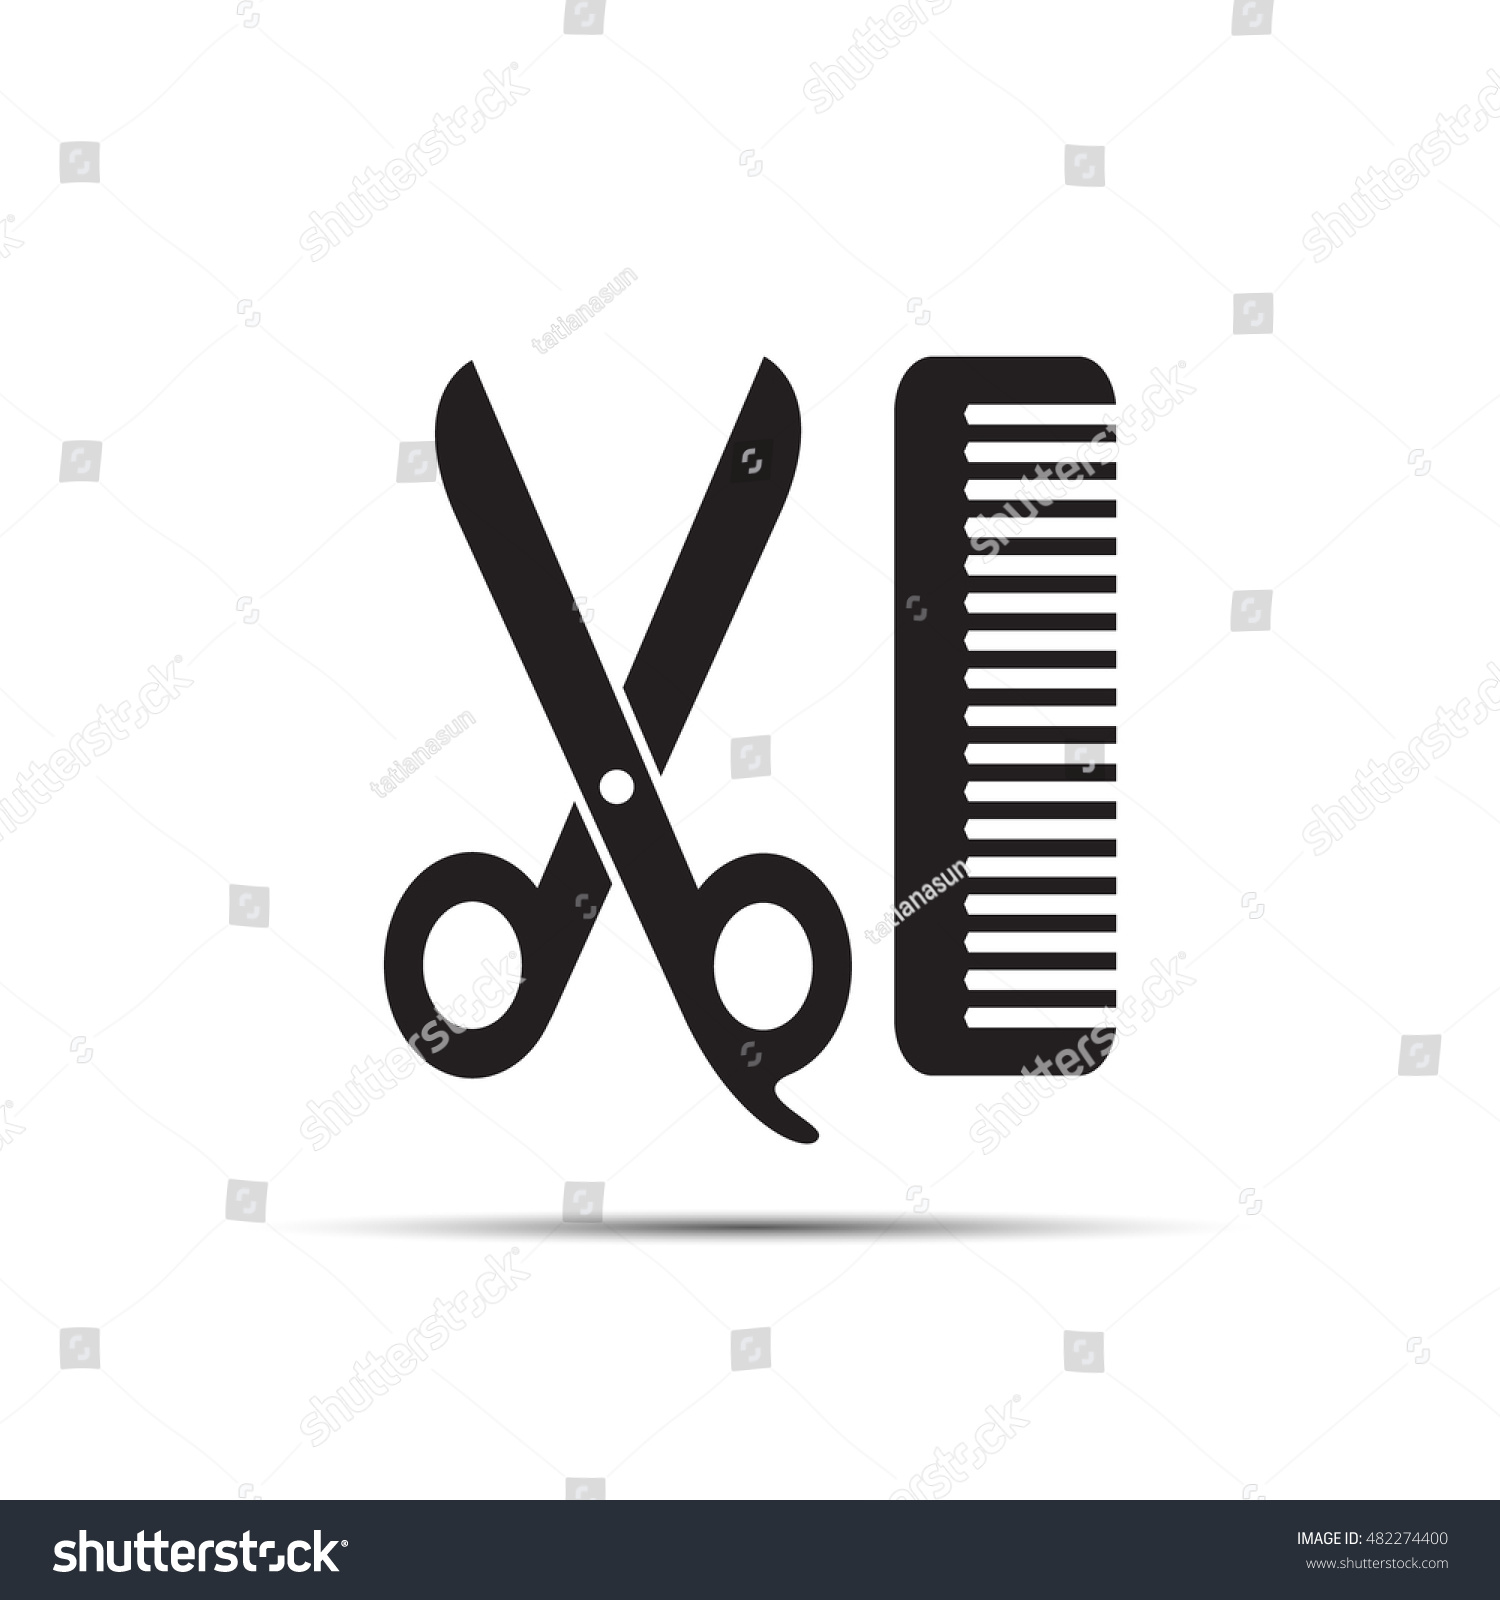 Scissors comb flat icon barbershop symbol stock vector 482274400 scissors and comb flat icon barbershop symbol haircut and hair salon symbol hairdresser biocorpaavc